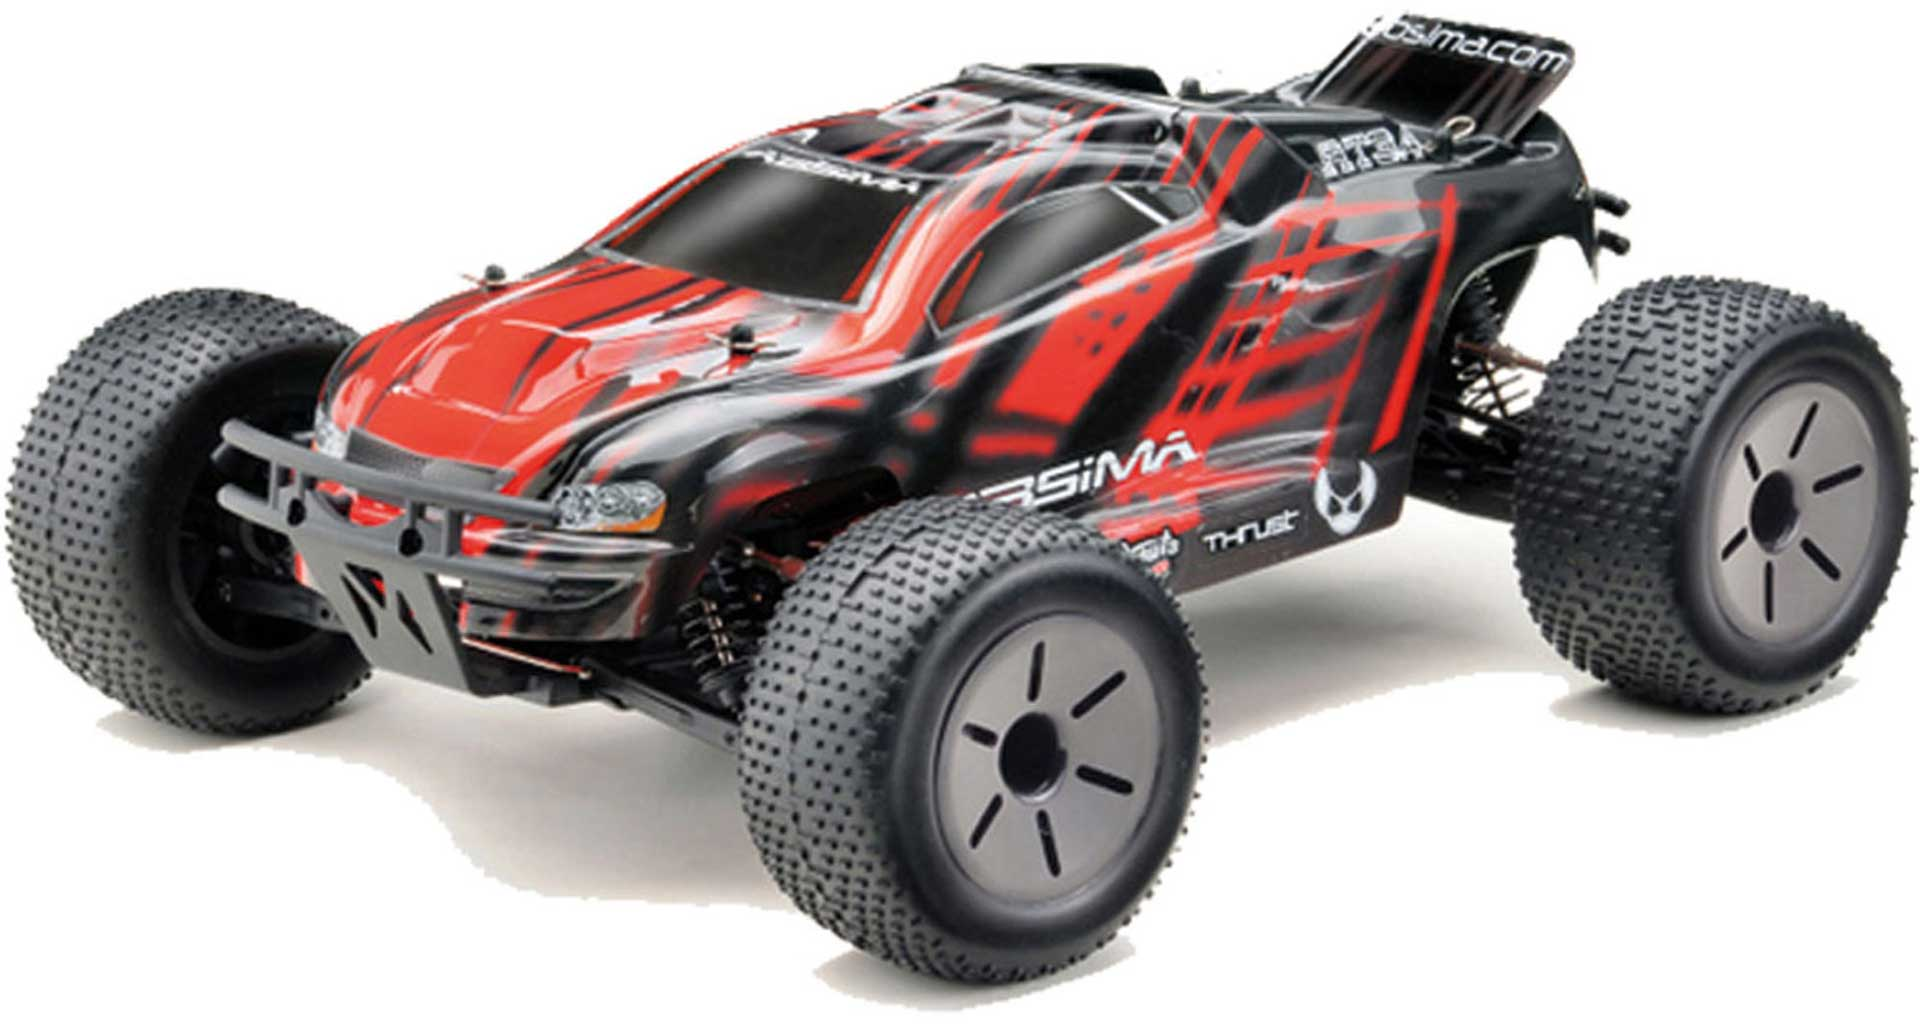 ABSIMA AT3.4 TRUGGY RTR 4WD + AKKU & LADER RACE TRUCK 1/10